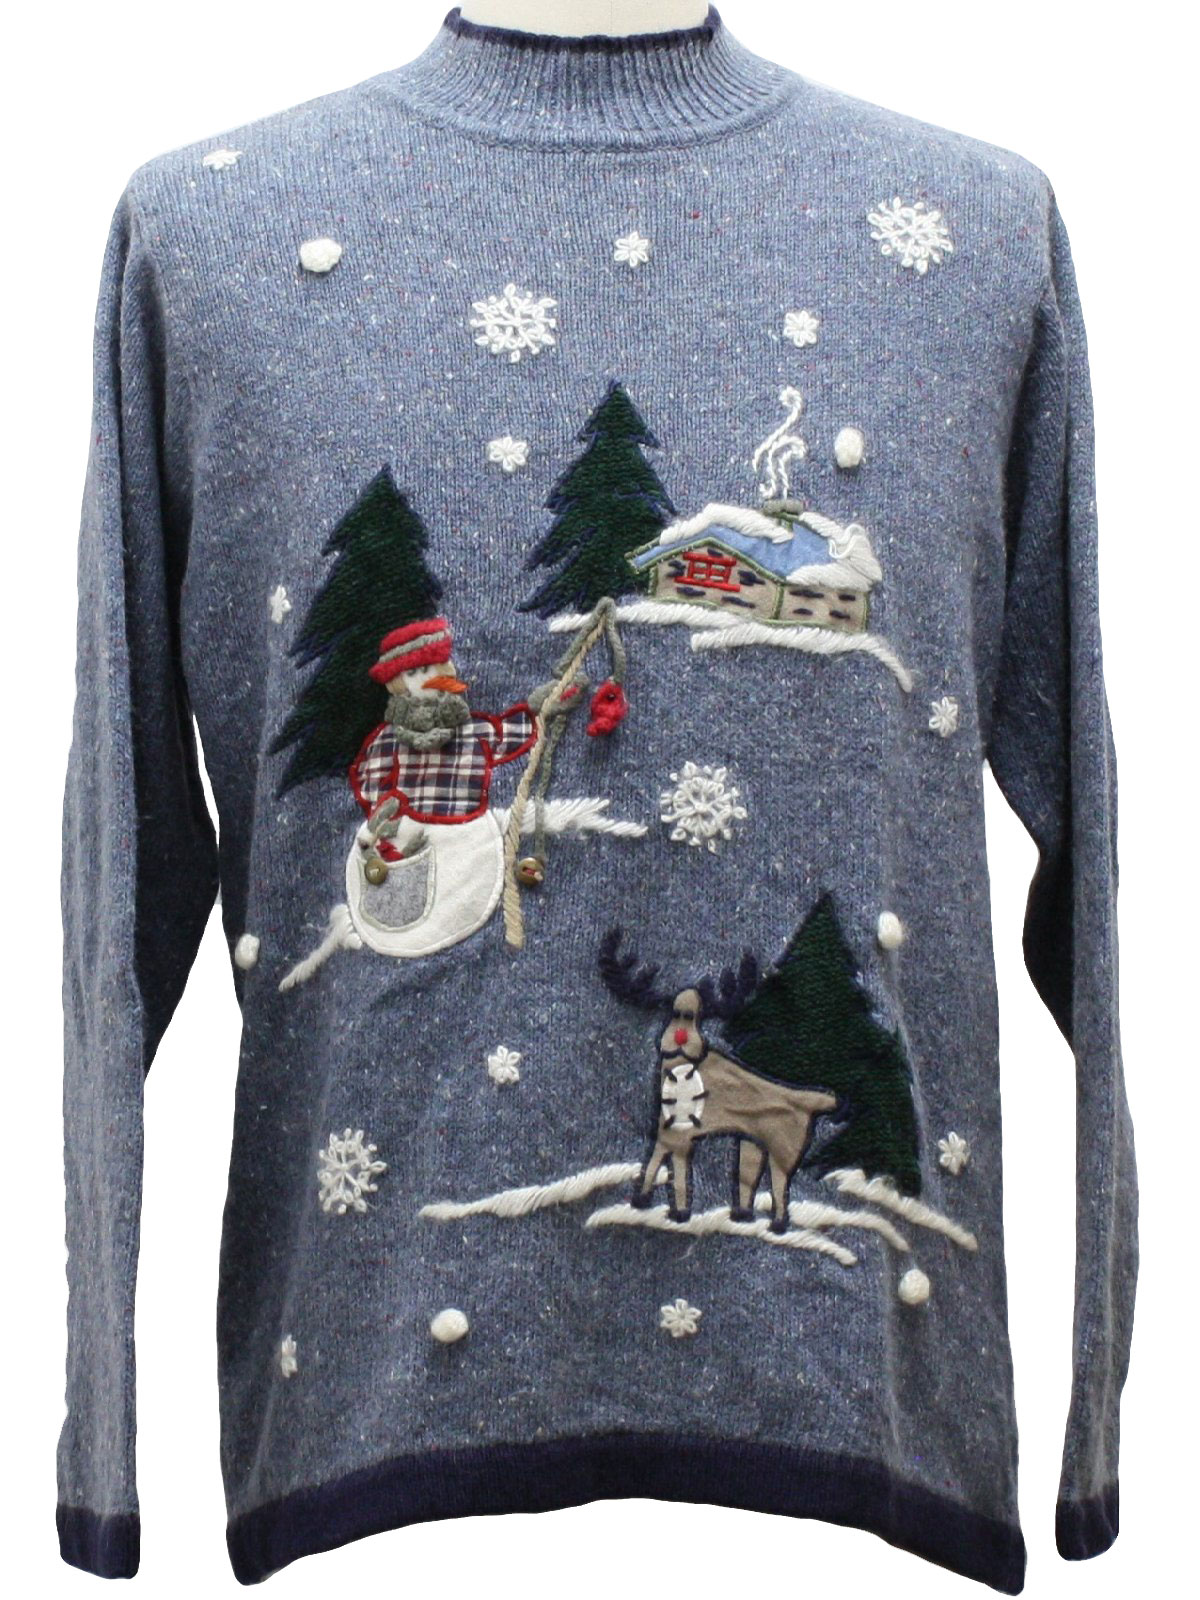 fishing snowman ugly christmas sweater studio collection